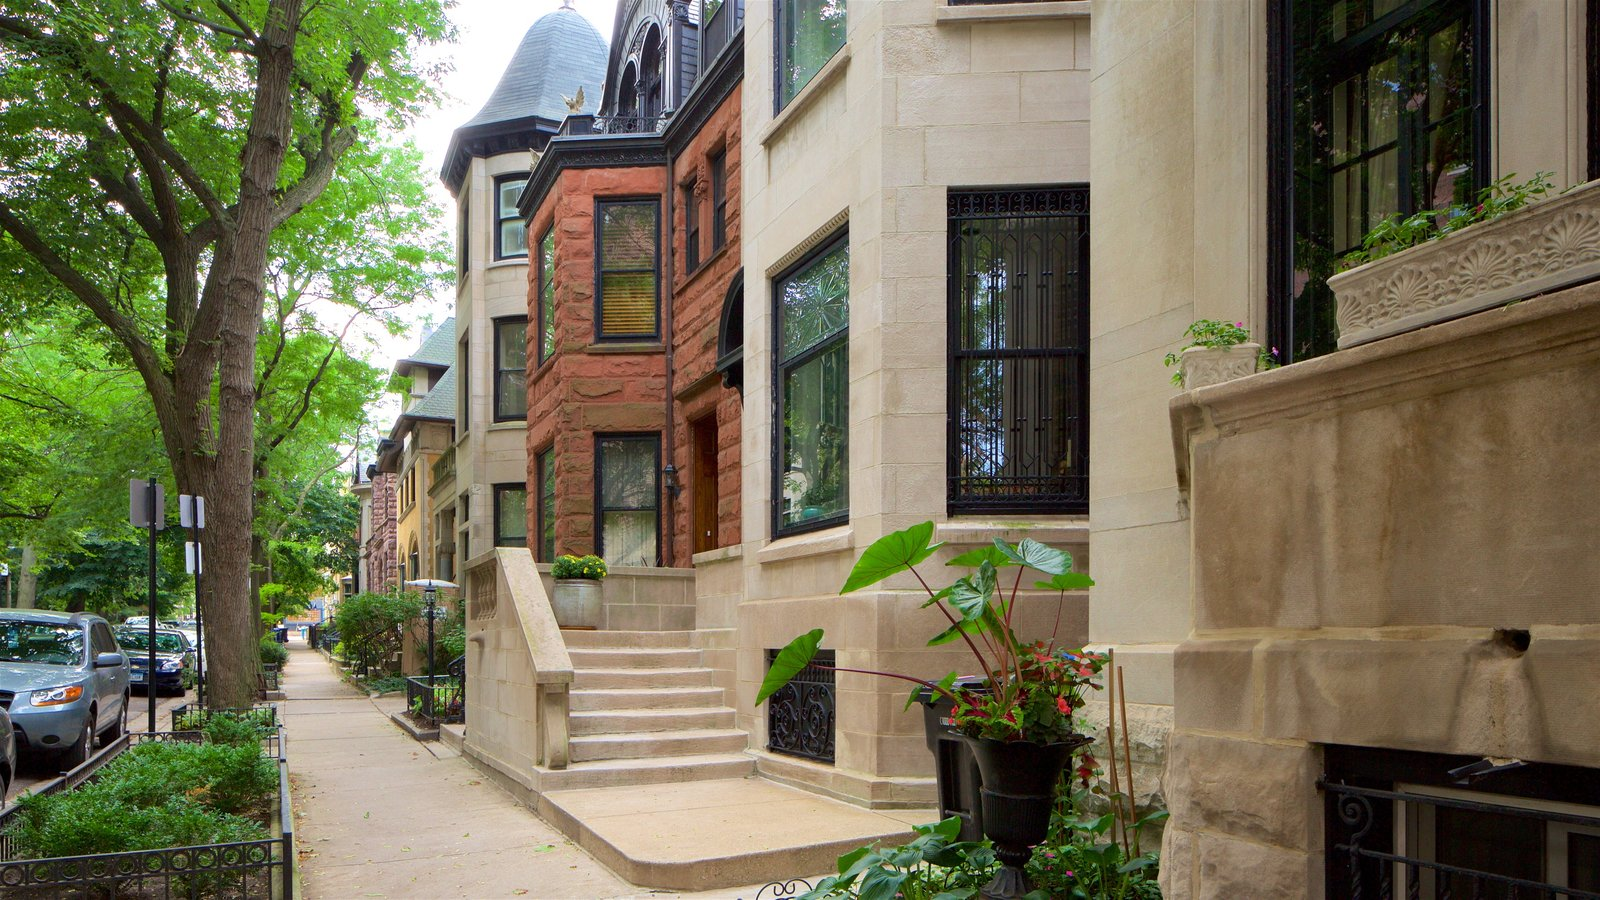 Lincoln Park featuring heritage architecture and street scenes